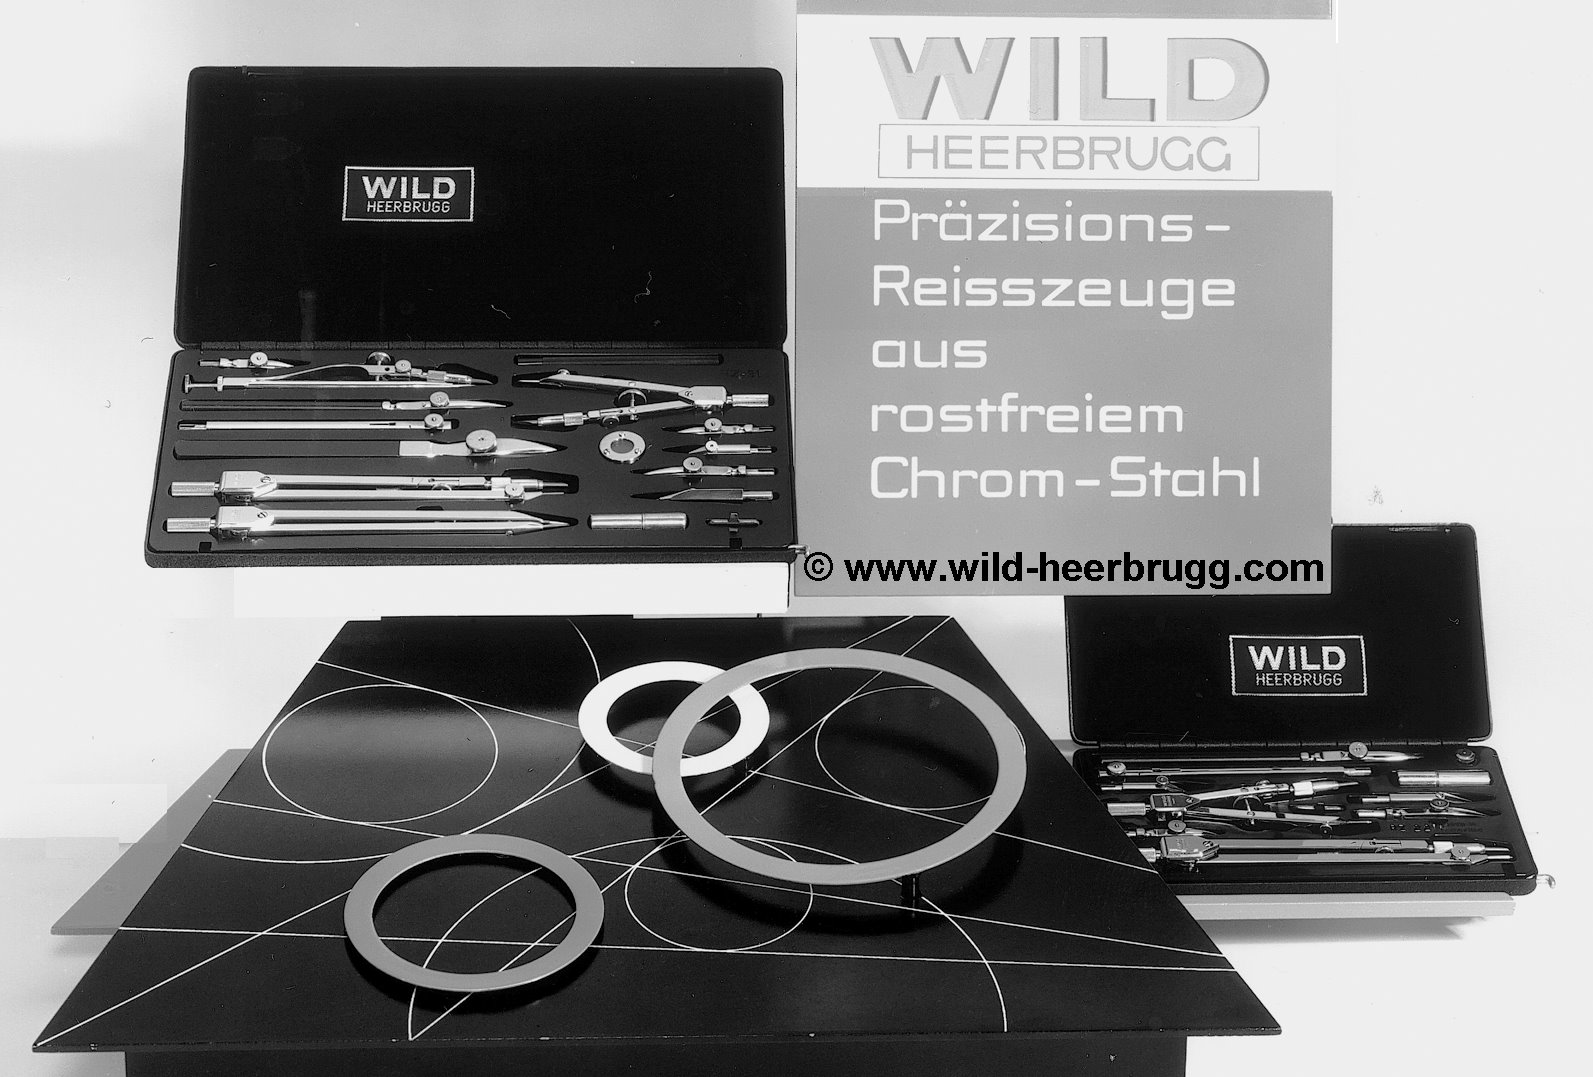 Wild Reisszeug showcase 1954